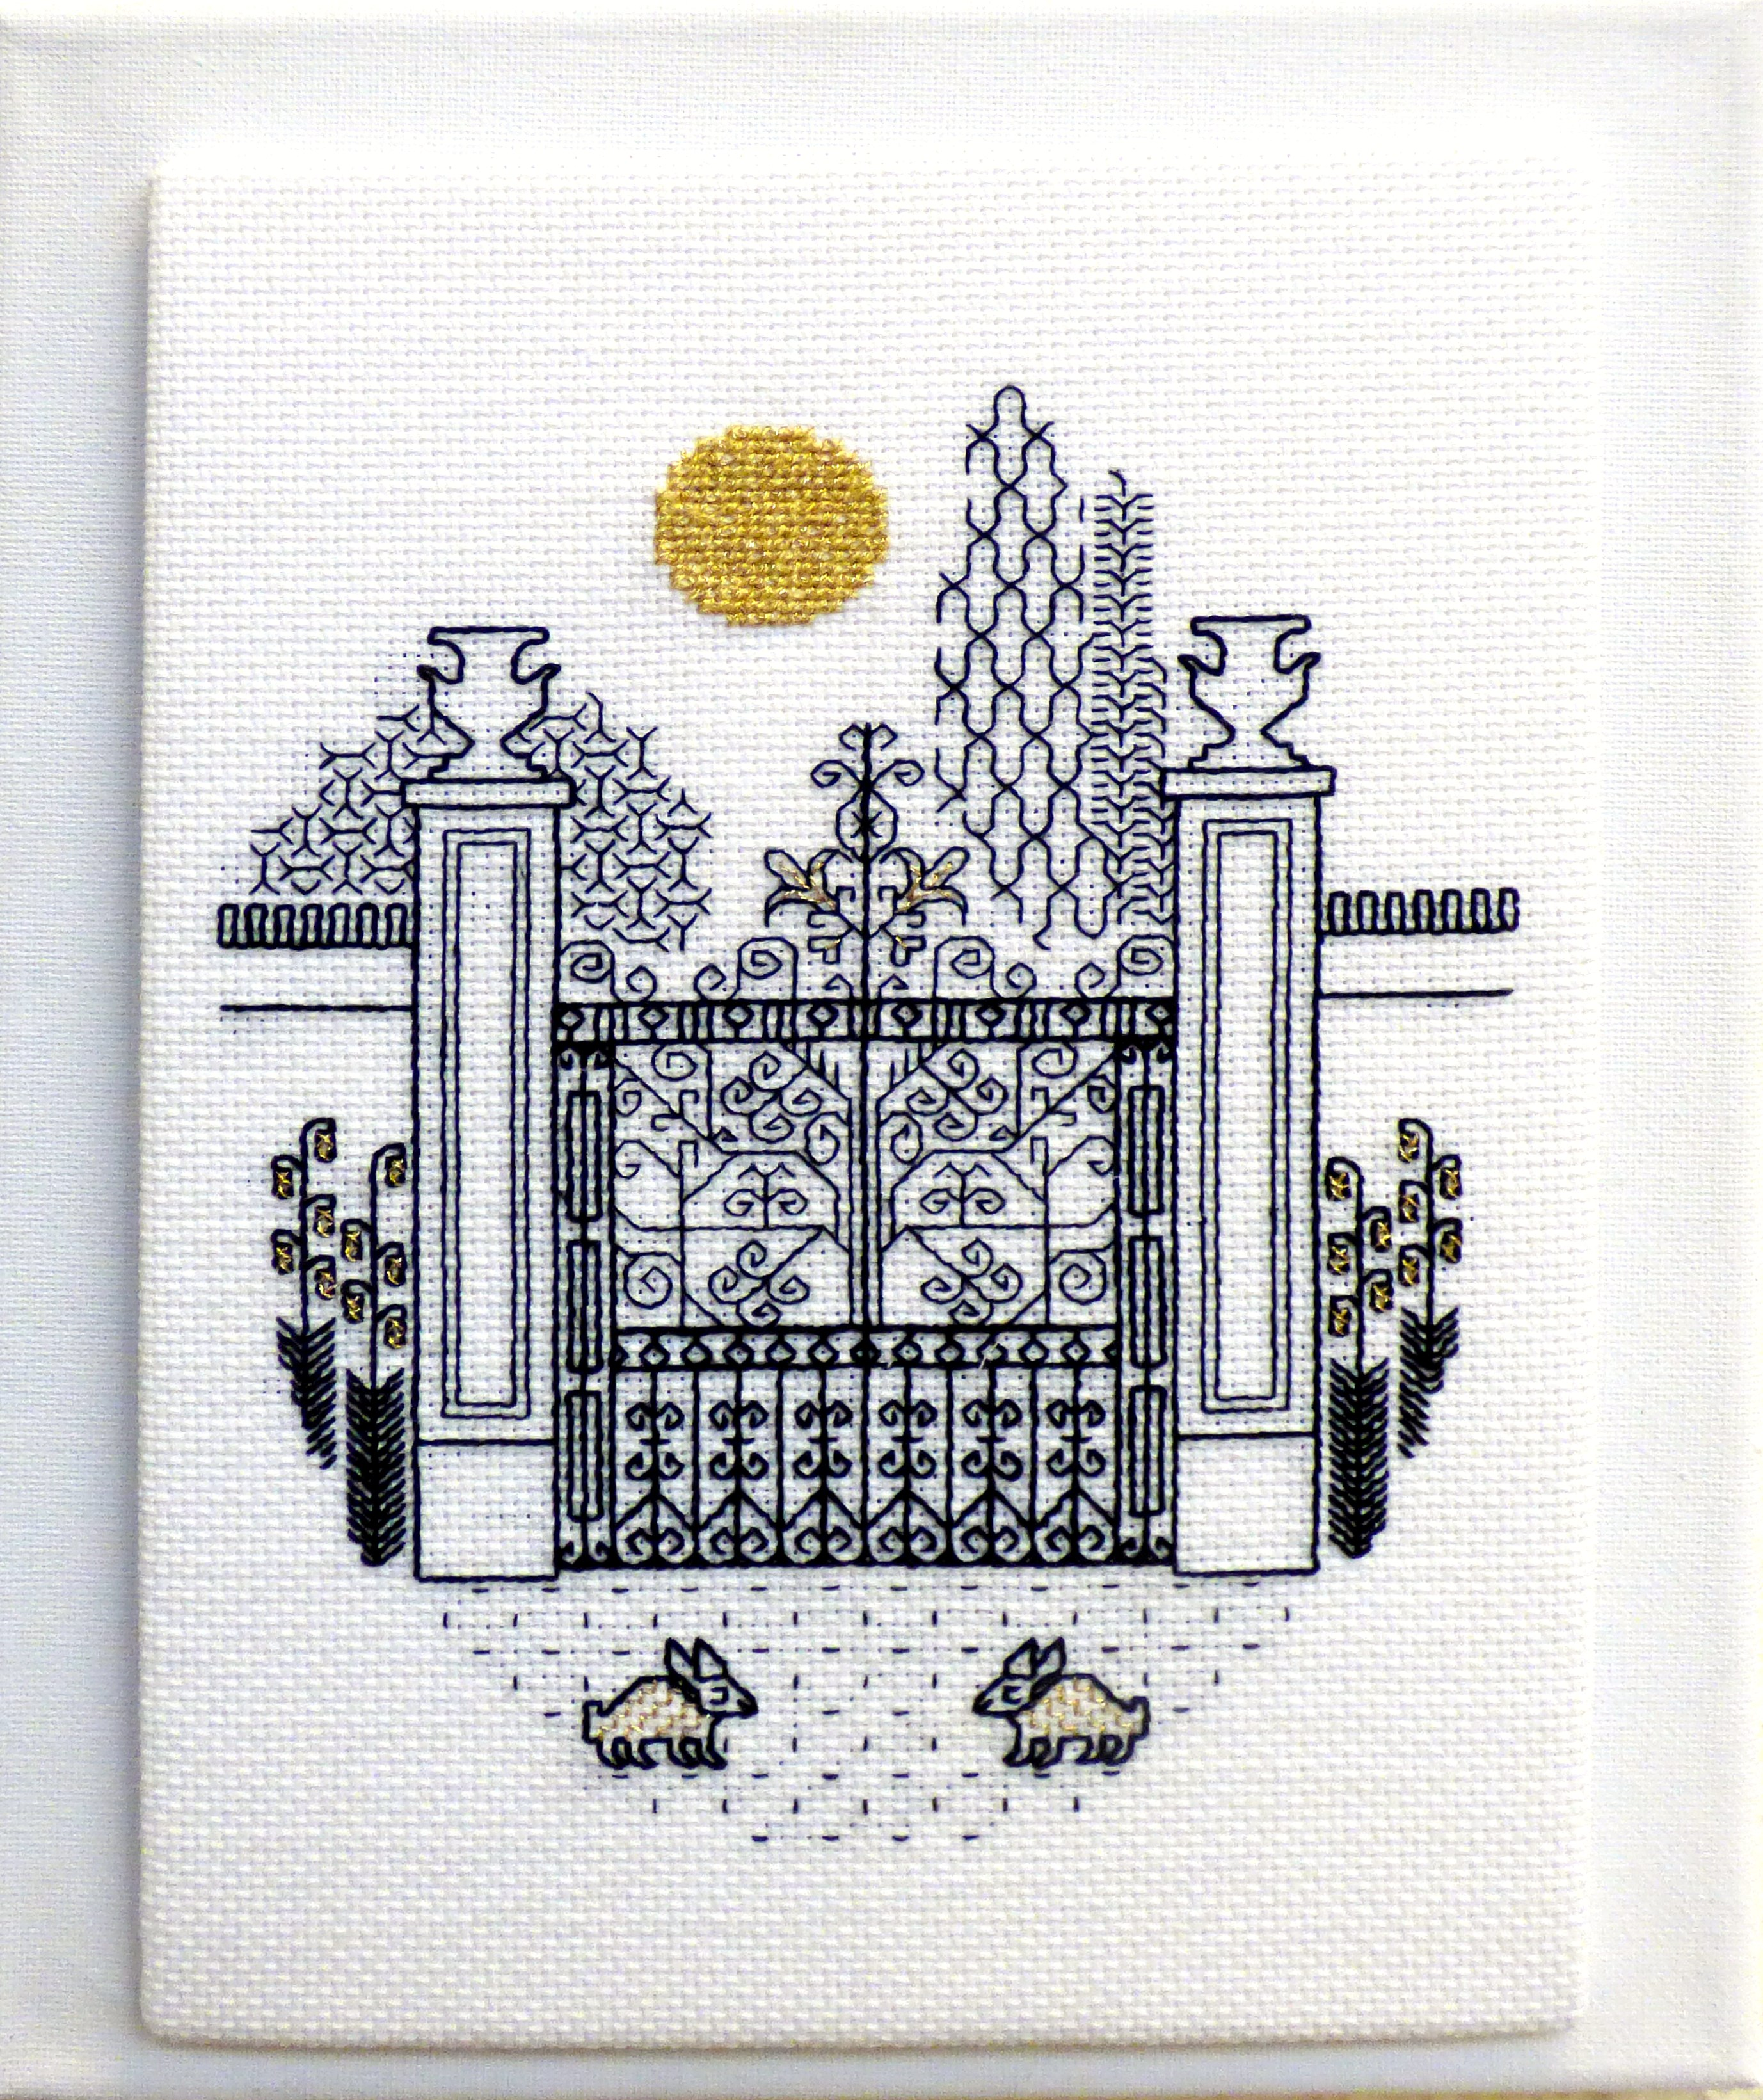 DECORATIVE GATES IN MOONLIGHT by Gillian Lacy, blackwork with gold accents